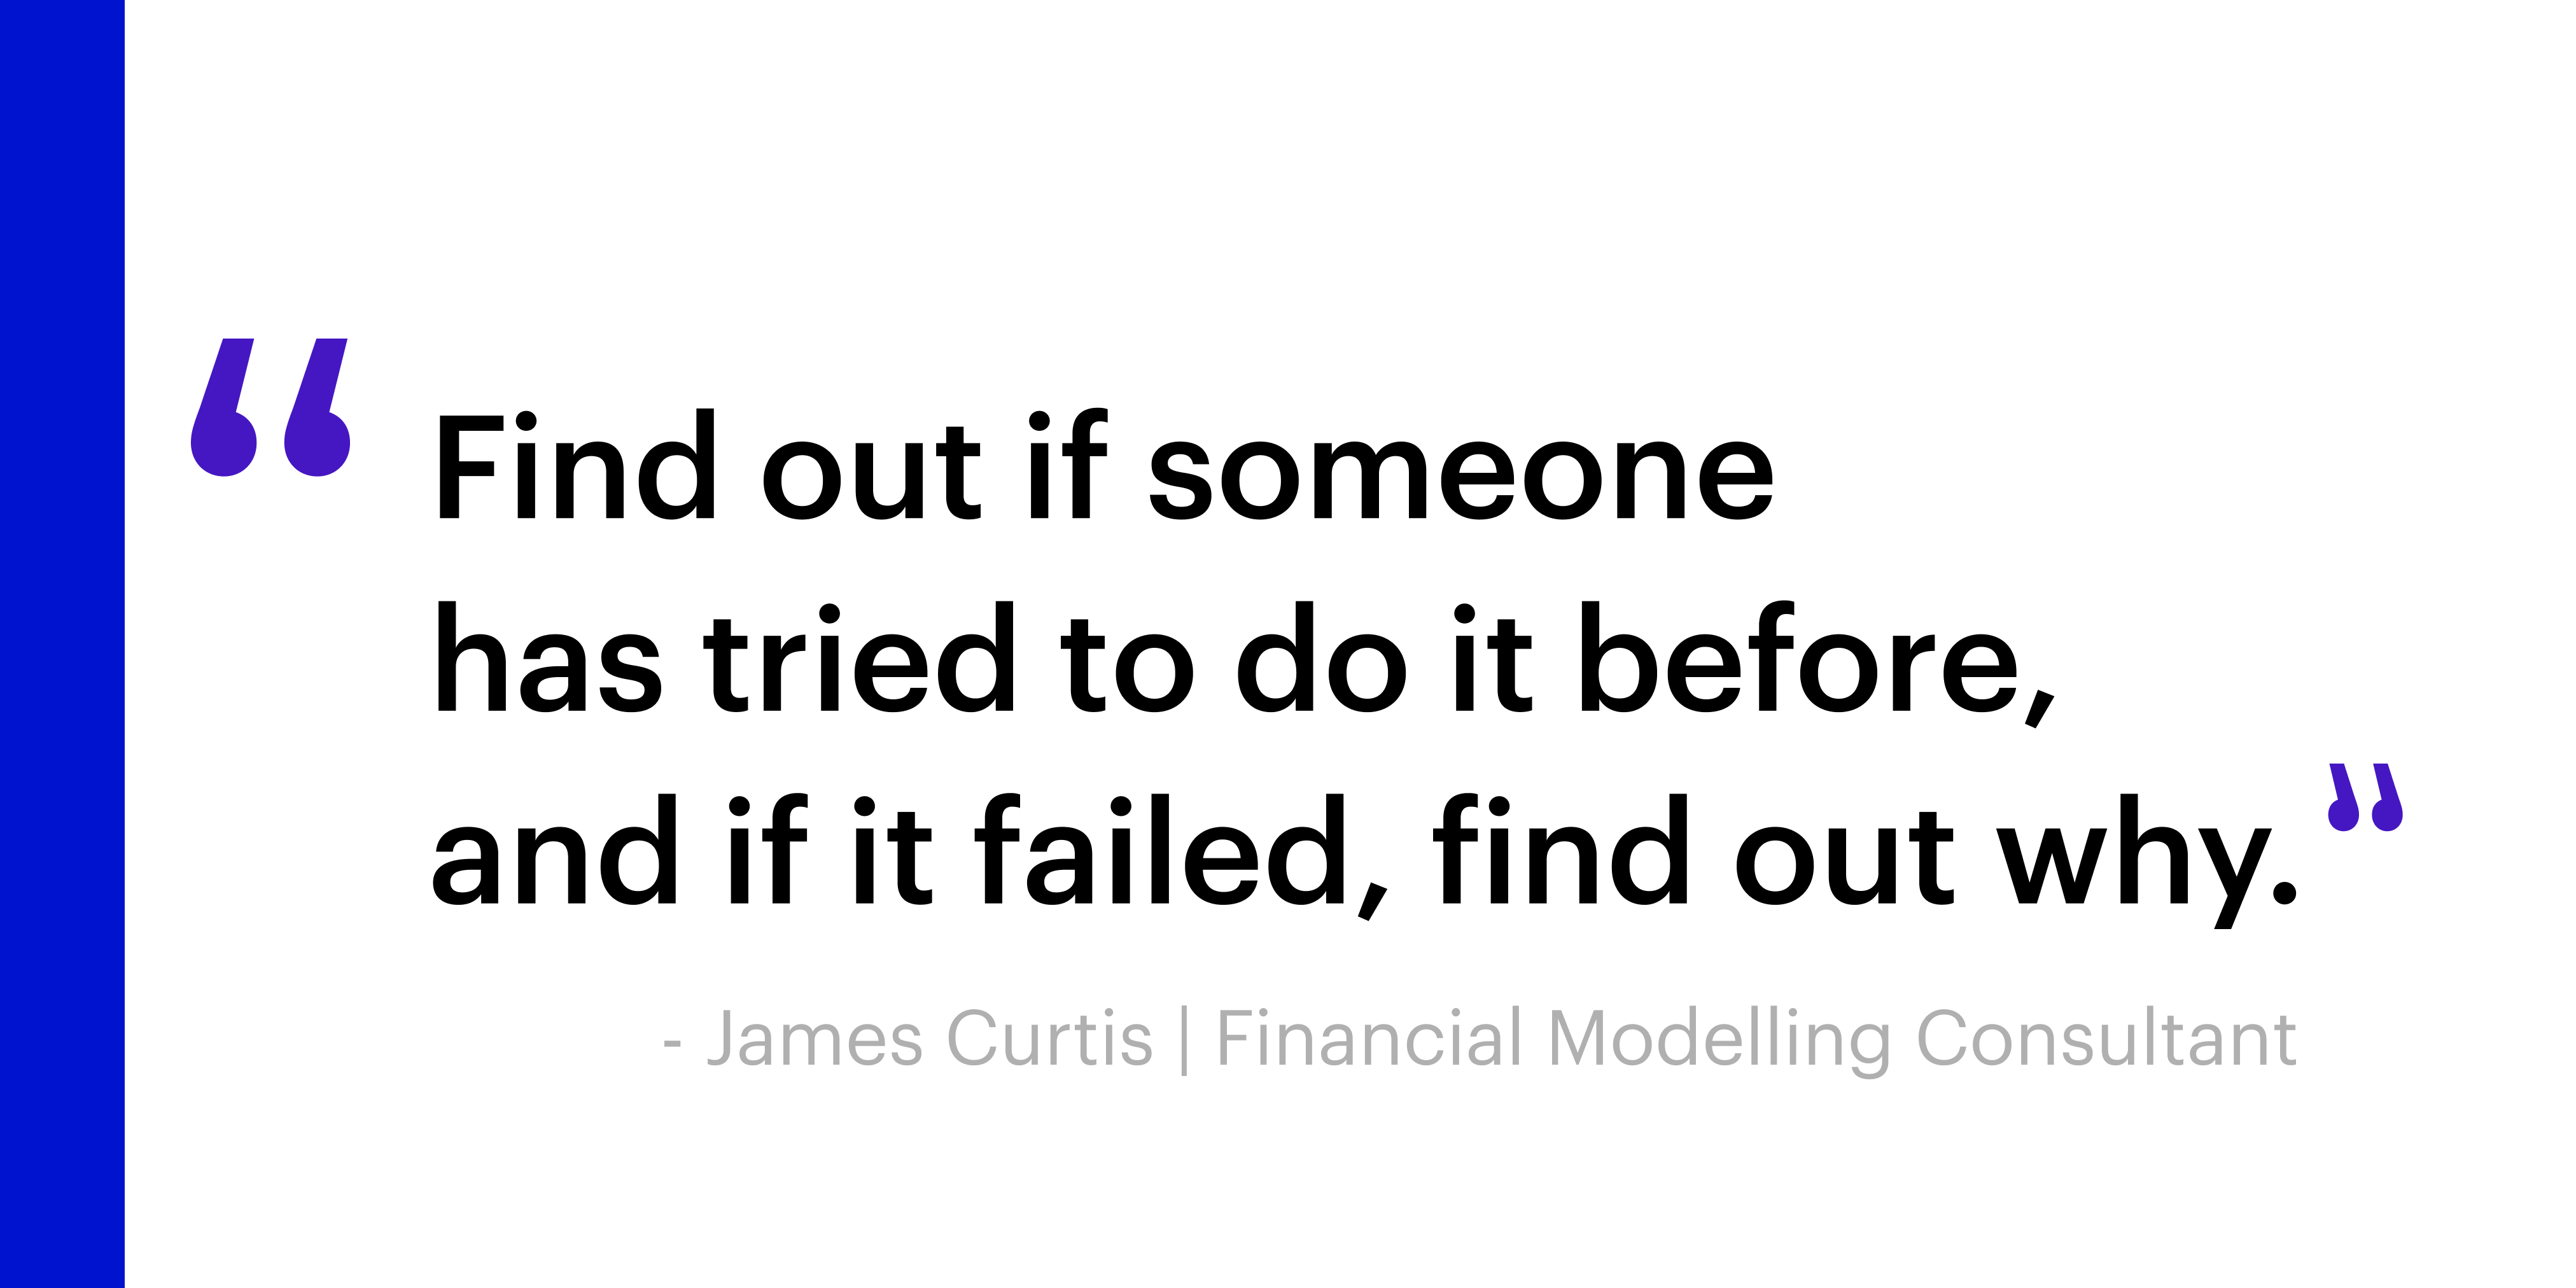 """Quote: """"Find out if someone has tried to do it before, and if it failed, find out why"""" - James Curtis on his top-tip for SMEs in product development"""